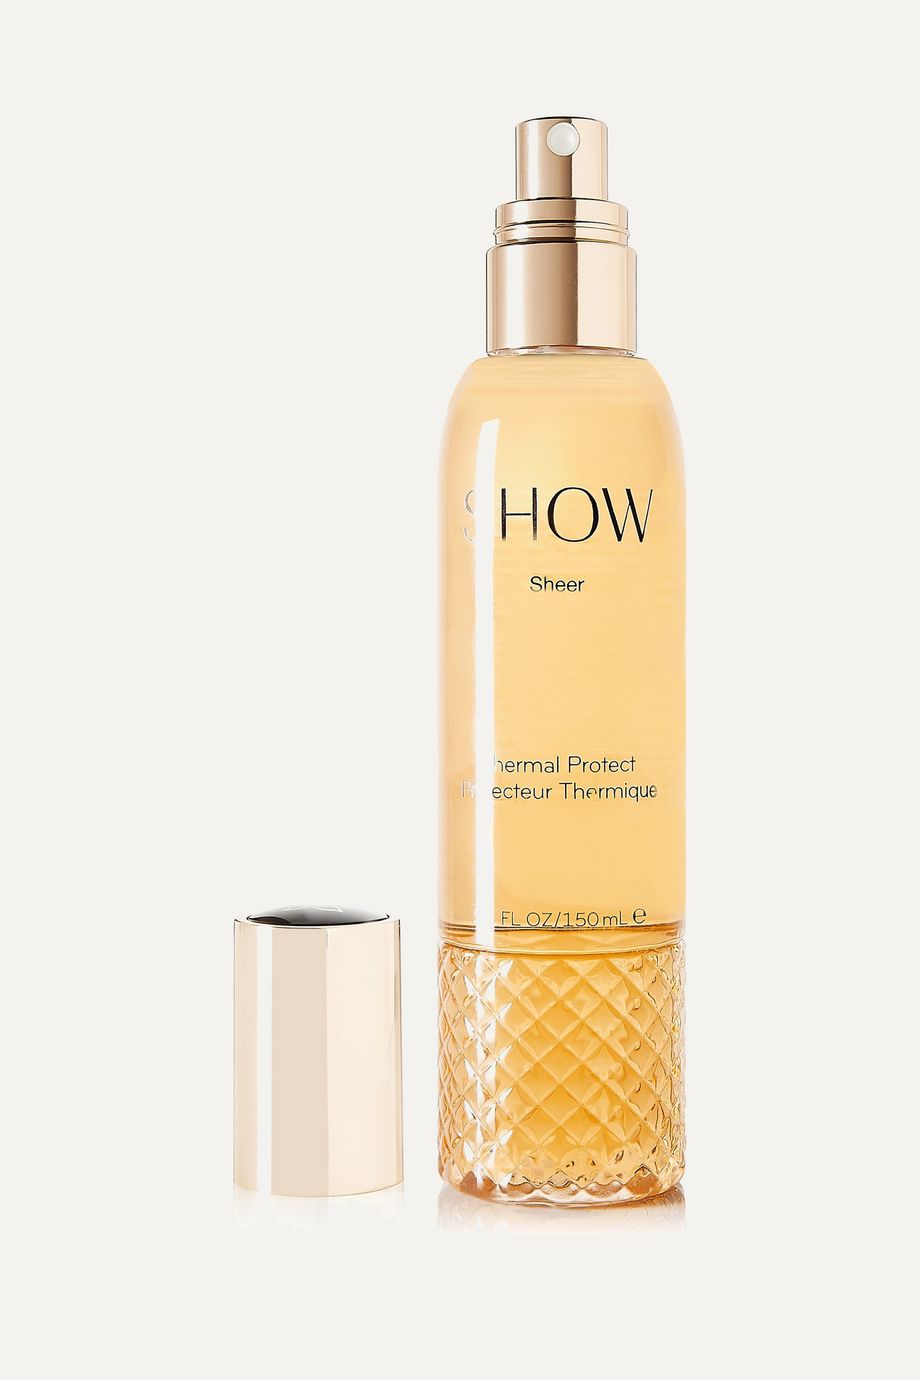 SHOW Beauty Sheer Thermal Protect, 150ml